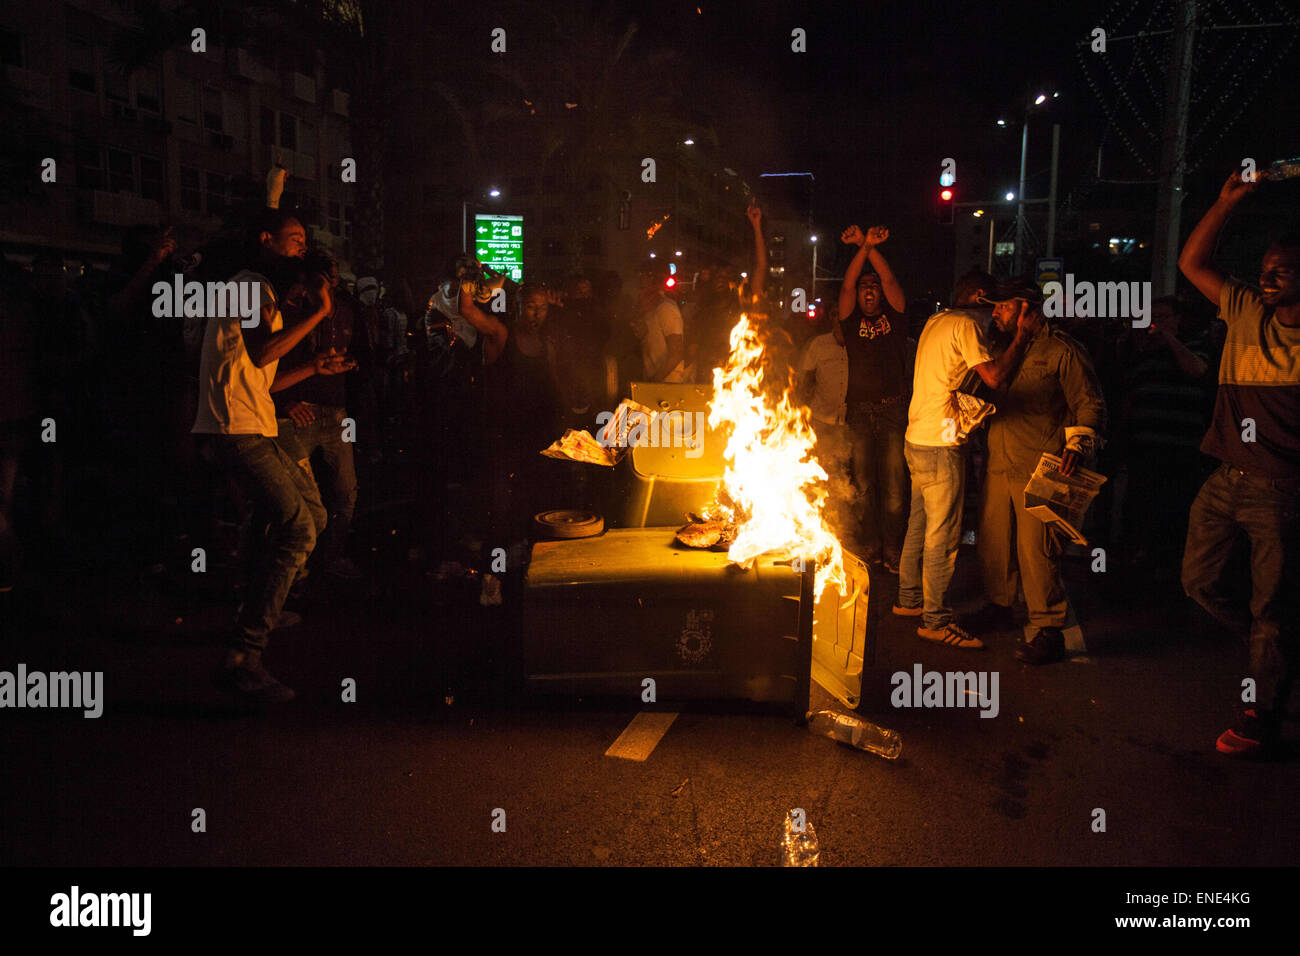 Burning The Jews Stockfotos & Burning The Jews Bilder - Seite 2 - Alamy